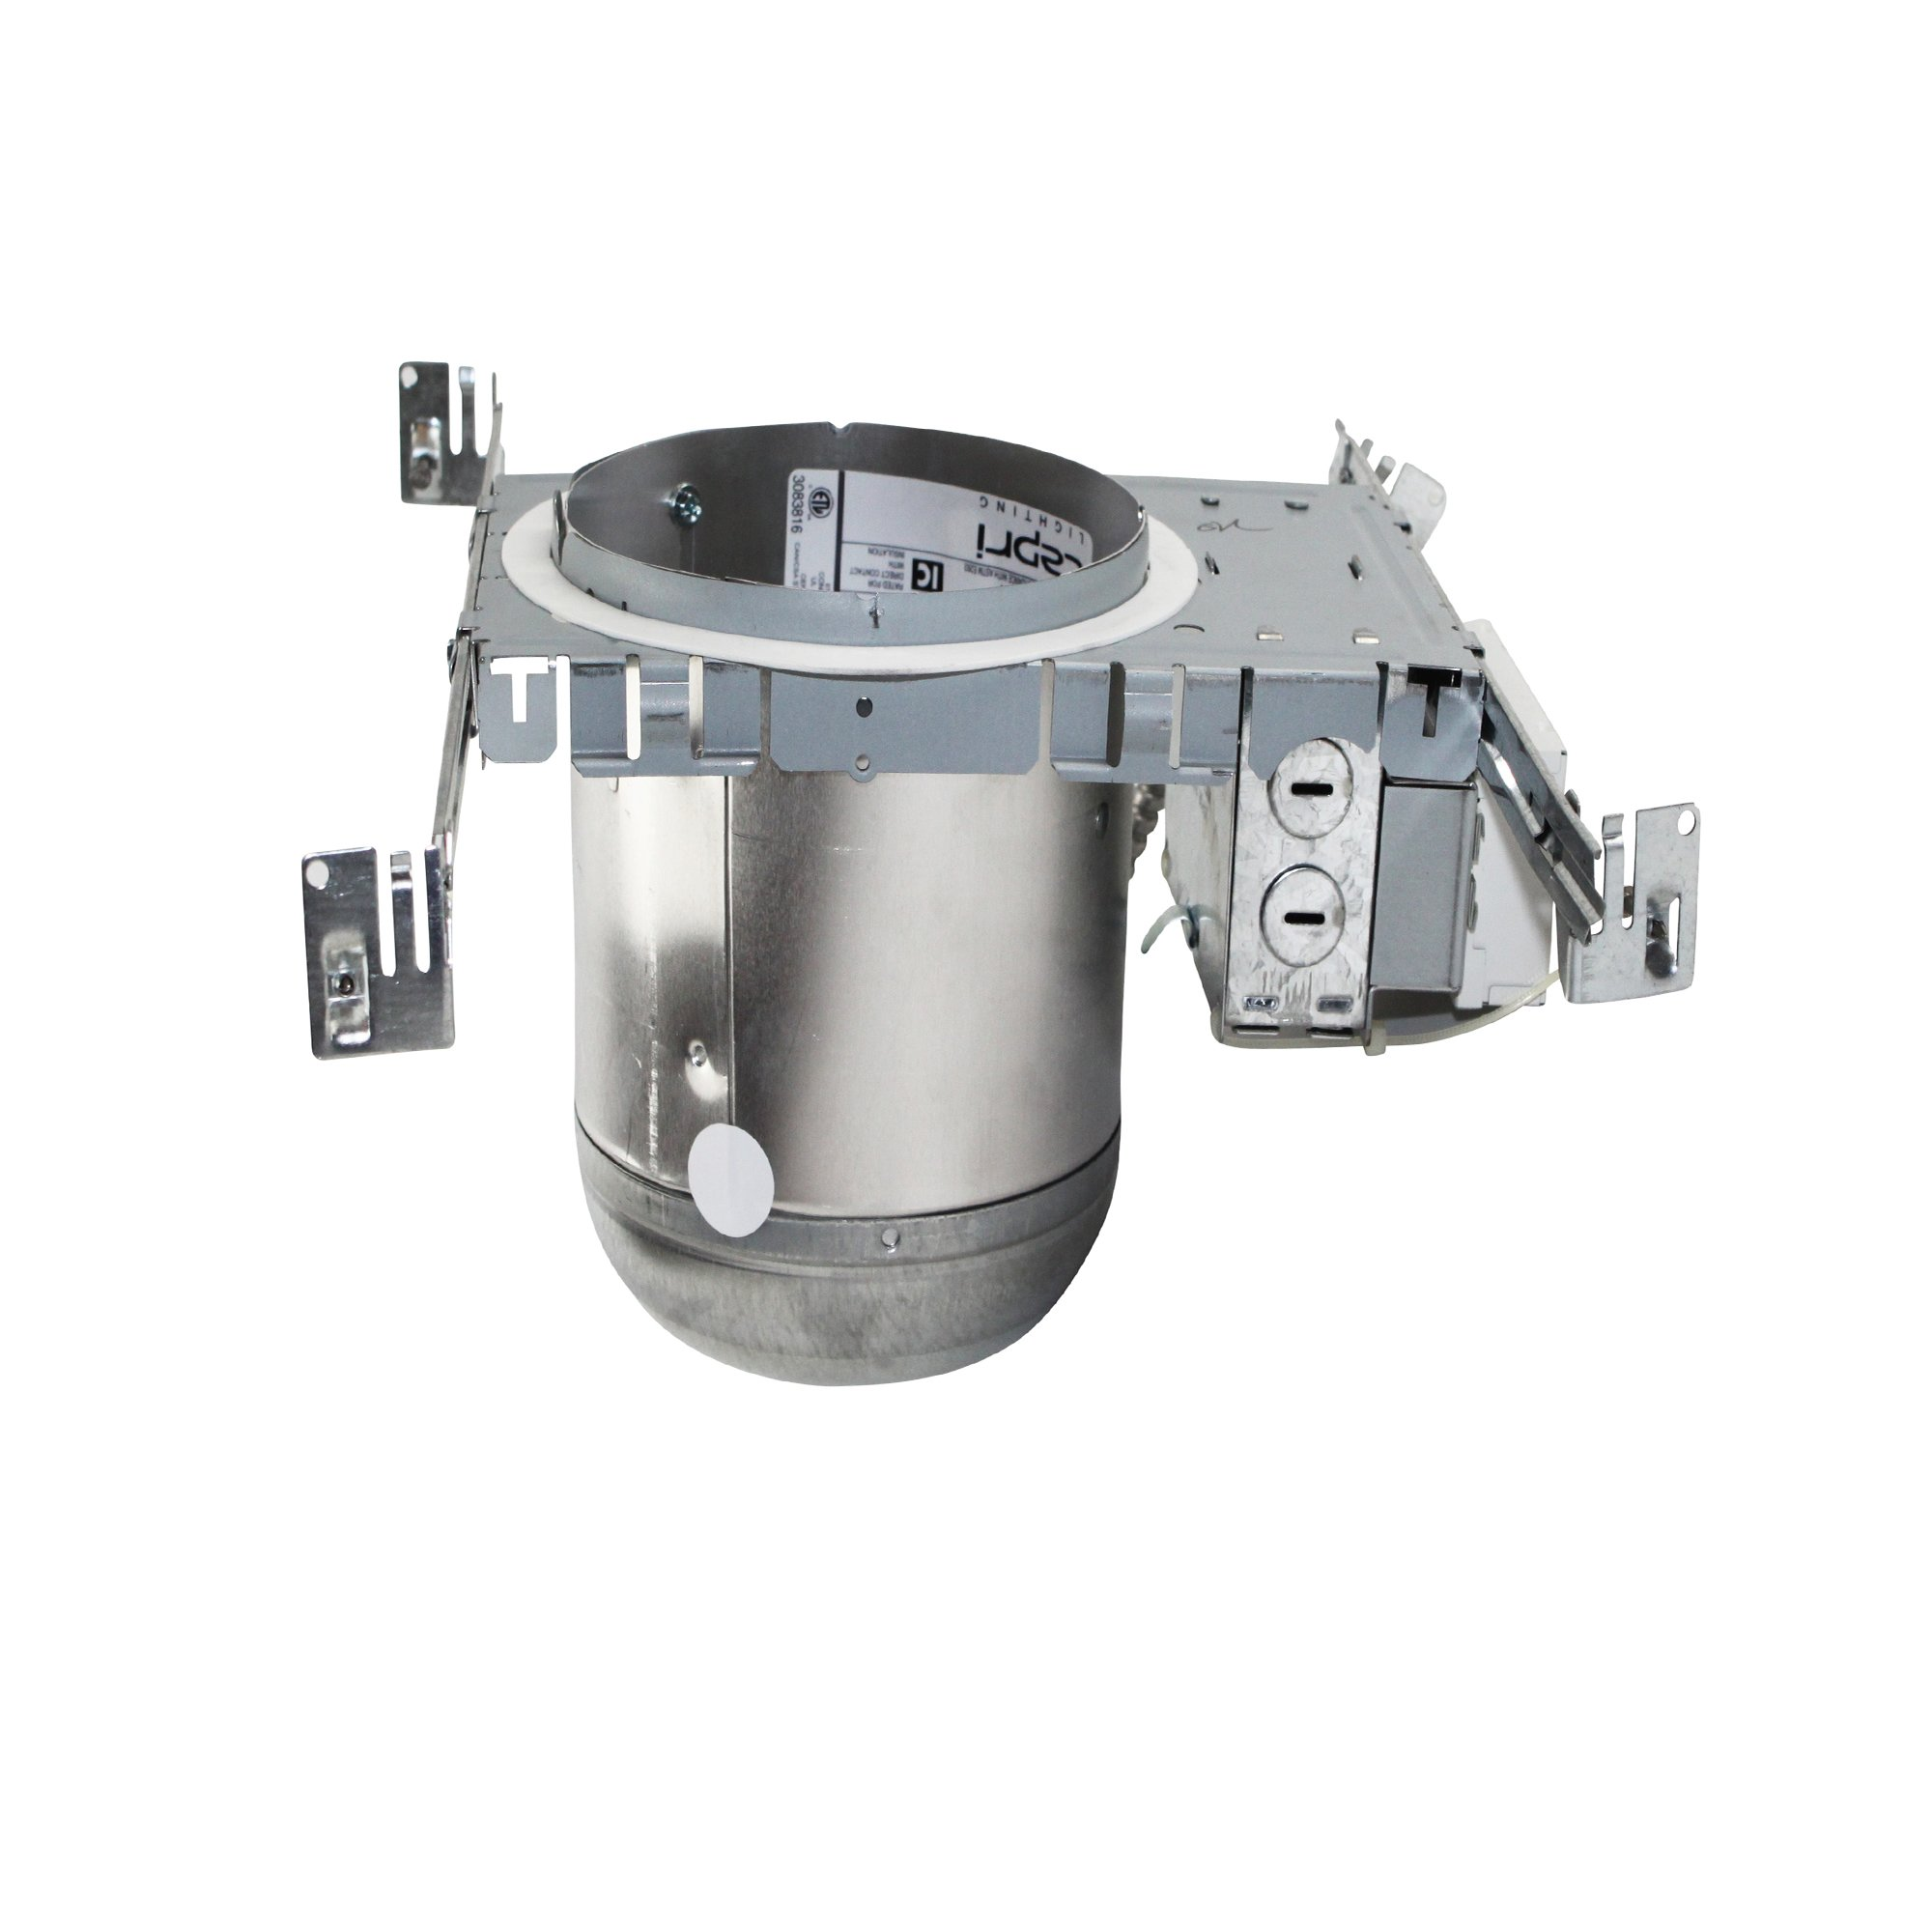 Capri Philips 6'' CFR6V Vertical Non-IC Rated/ Cfl Downlights, New Construction CFL Downlights Recessed Housing Air-Tite